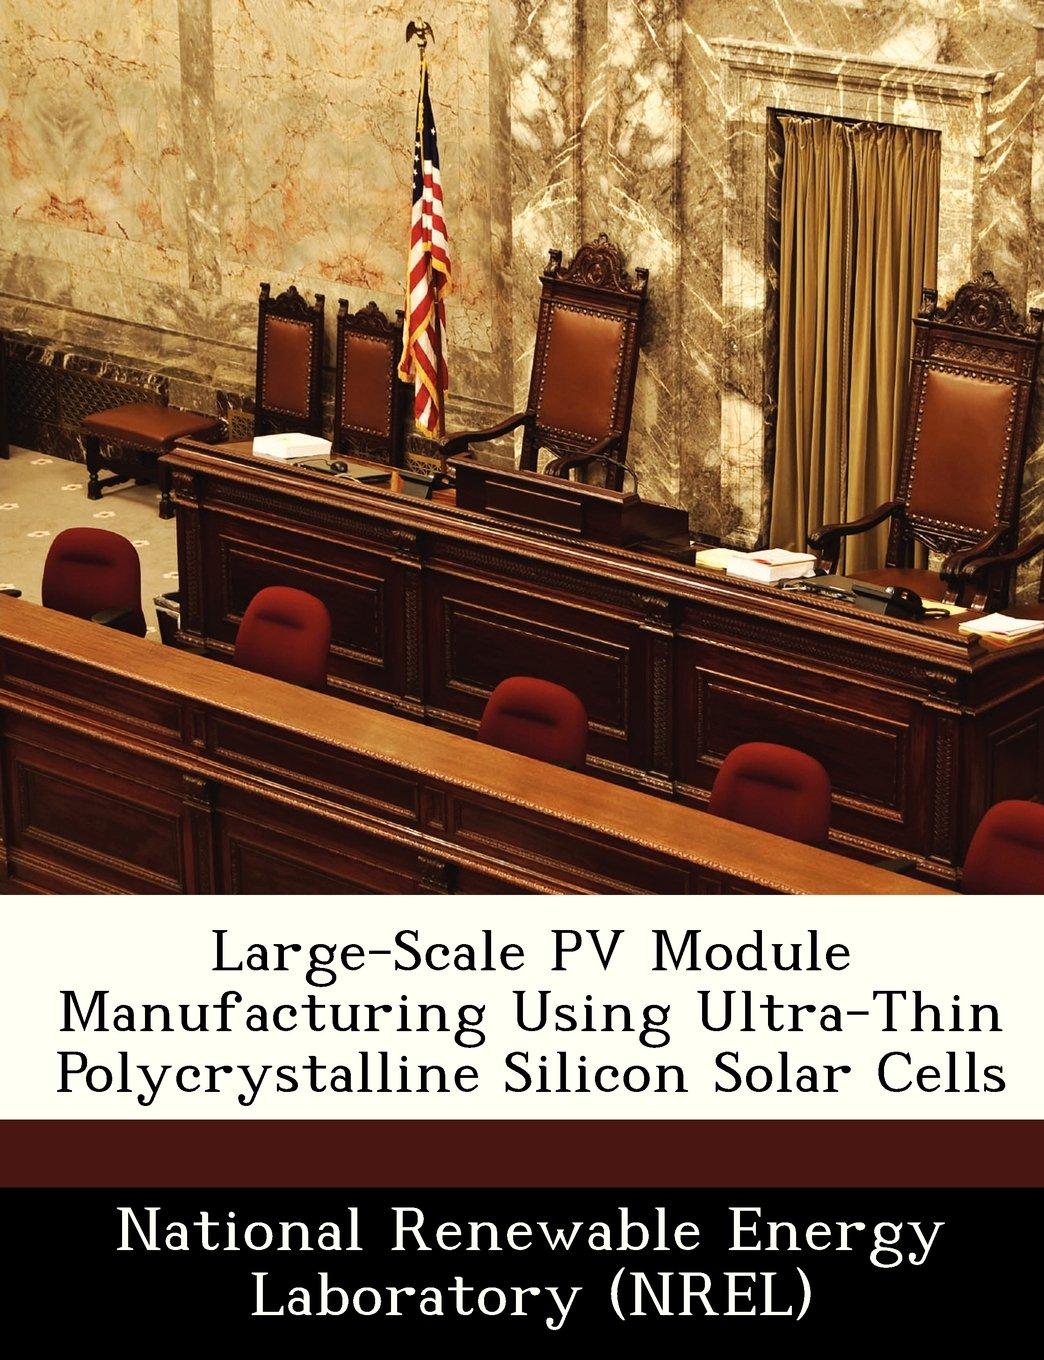 Large-Scale PV Module Manufacturing Using Ultra-Thin Polycrystalline Silicon Solar Cells pdf